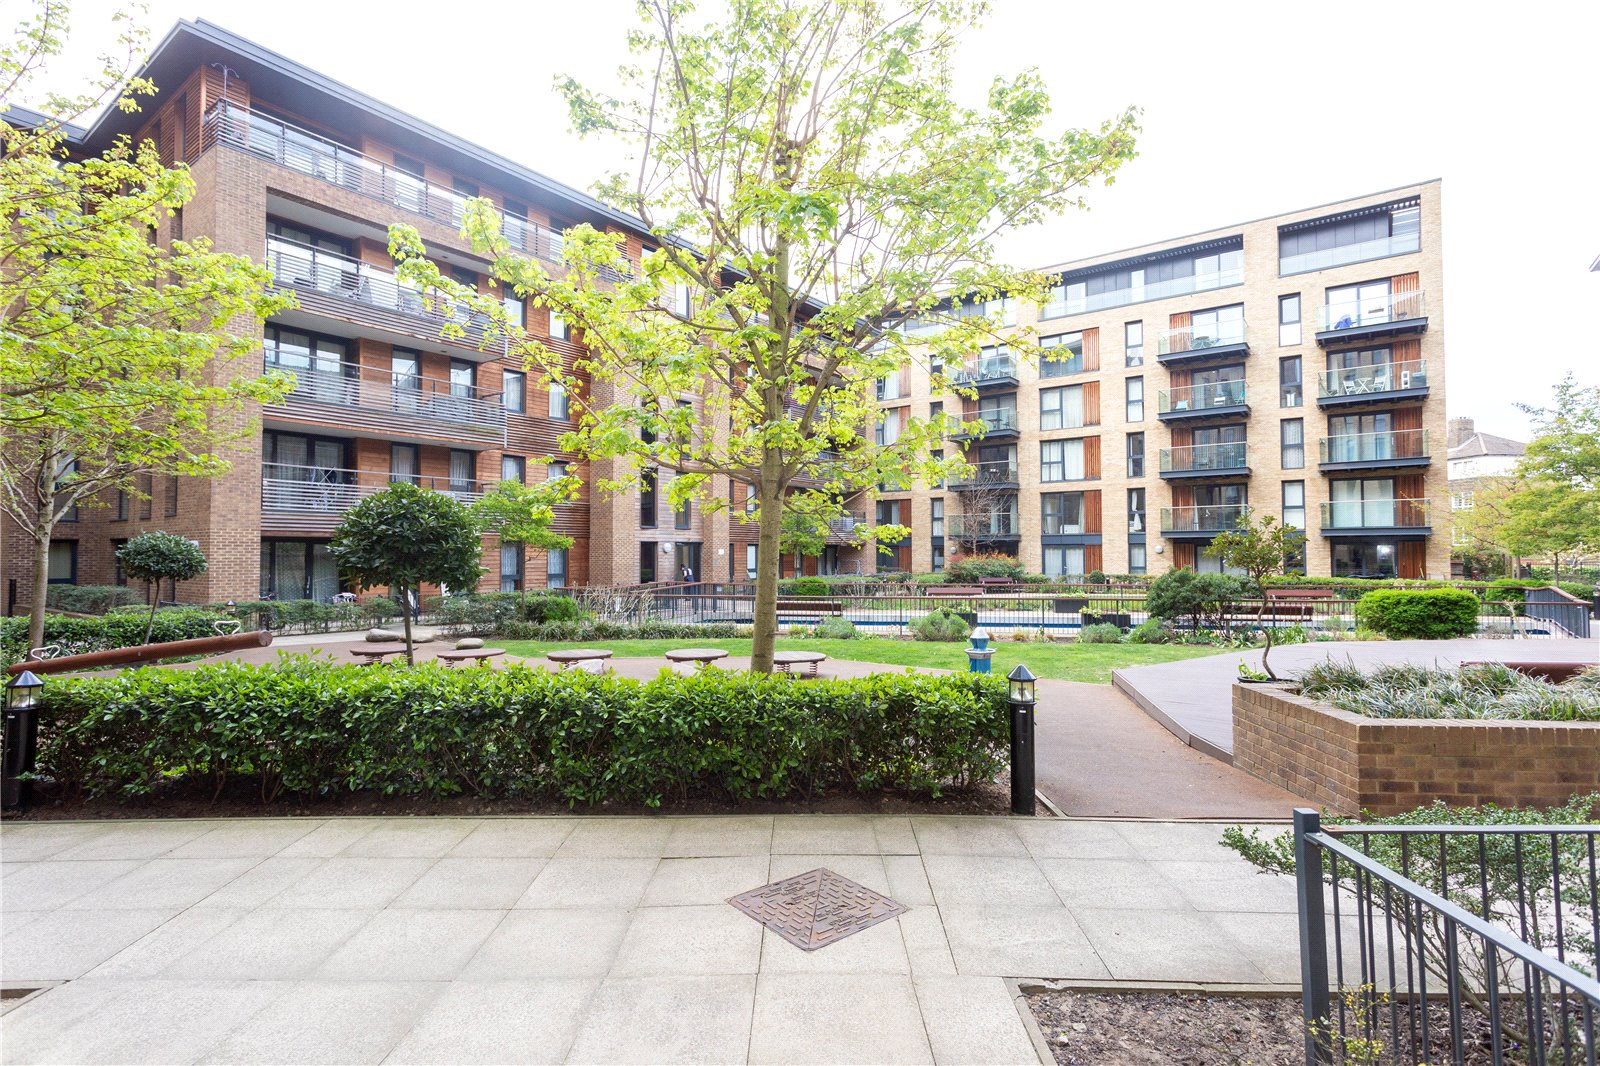 Surrey Quays Road, Canada Water, London, SE16 Image 11